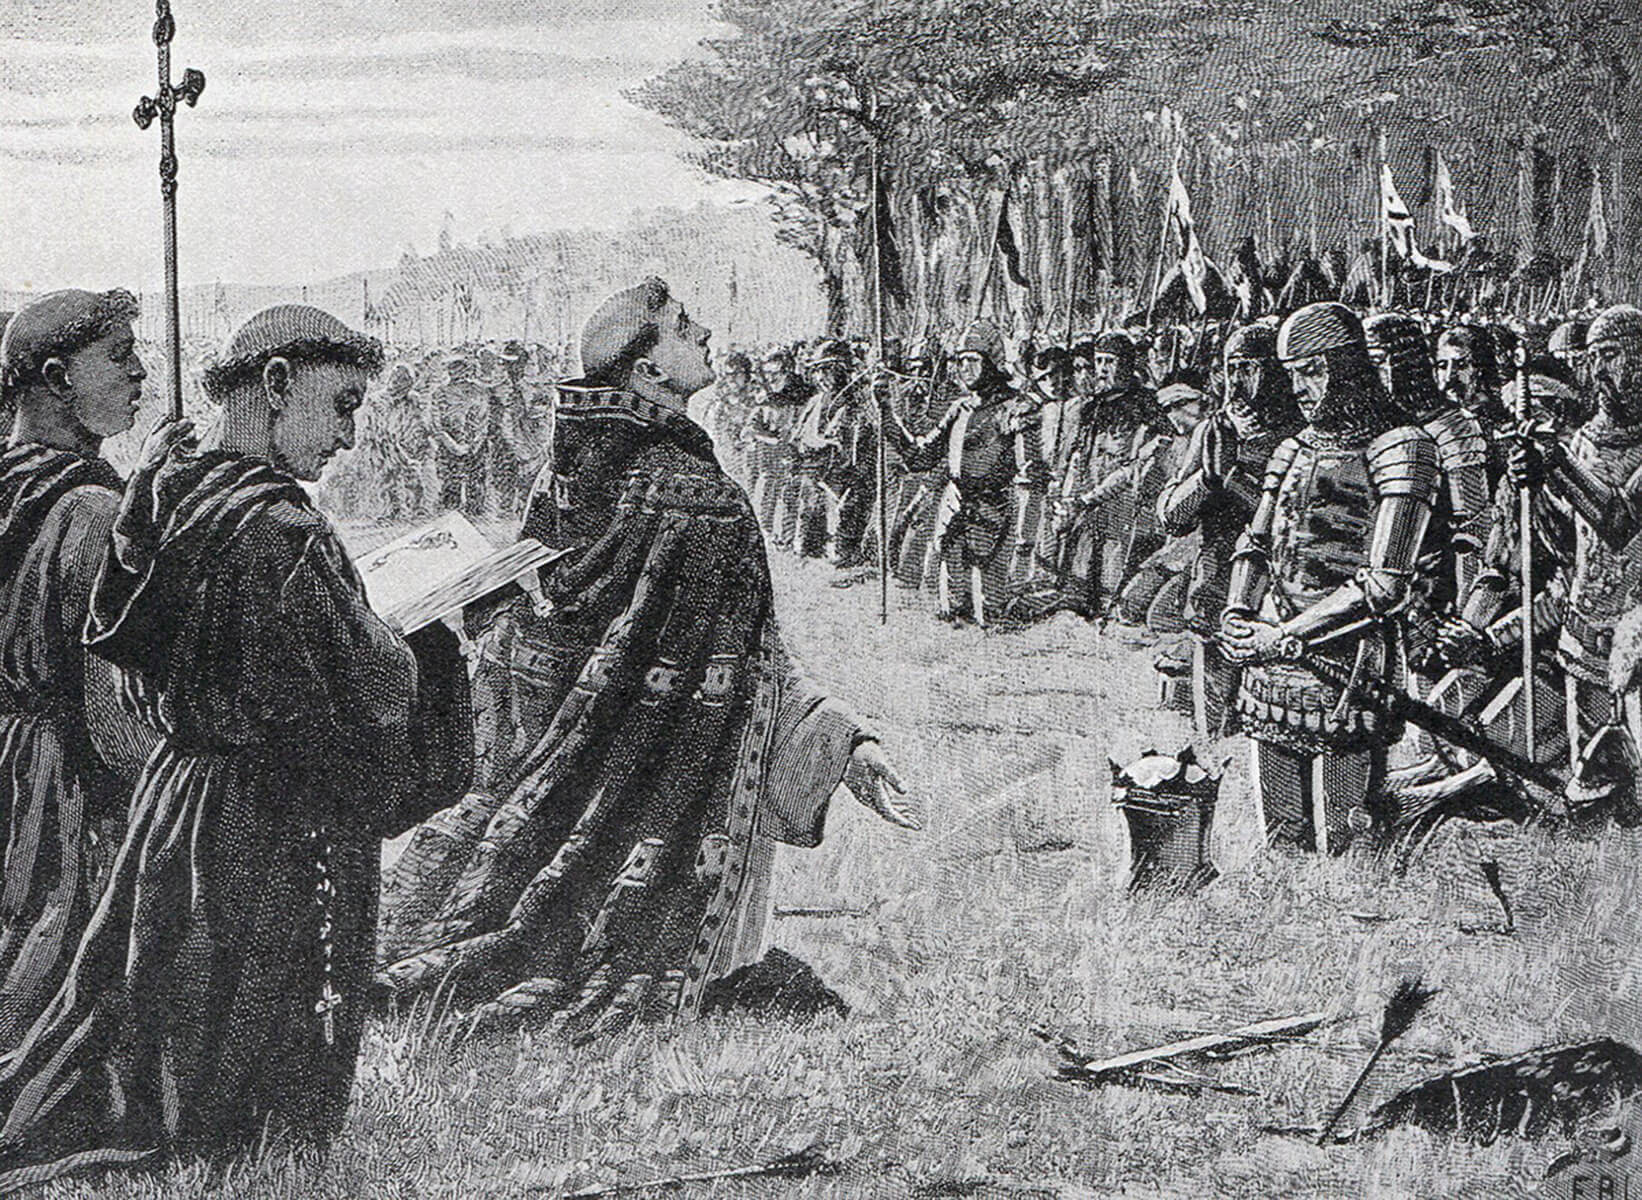 King Henry V gives thanks for his victory after the Battle of Agincourt on 25th October 1415 in the Hundred Years War